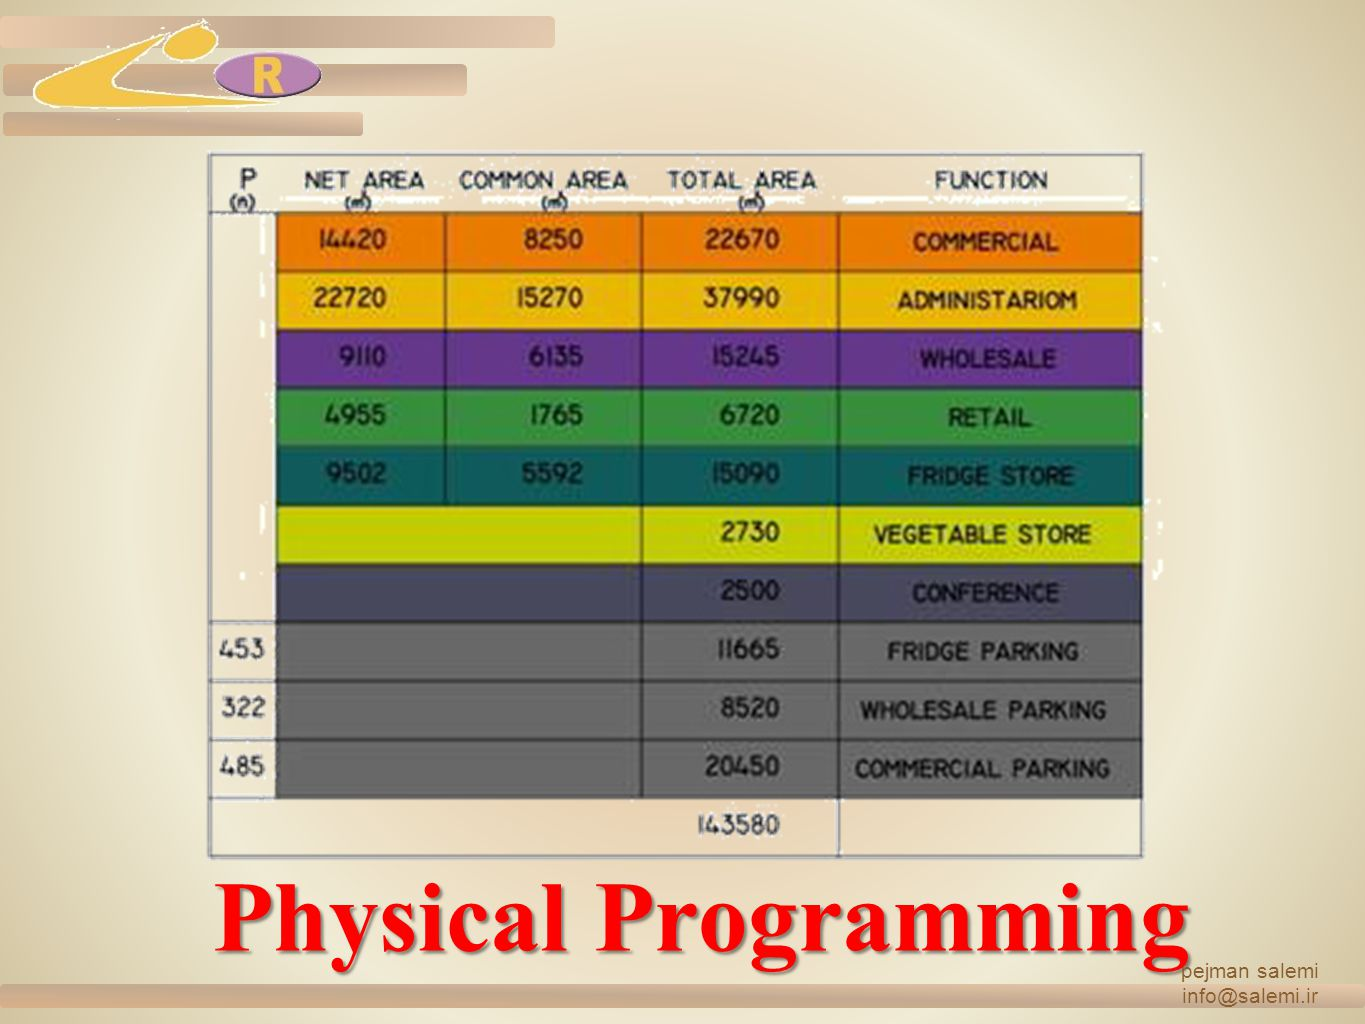 pejman salemi info@salemi.ir Physical Programming